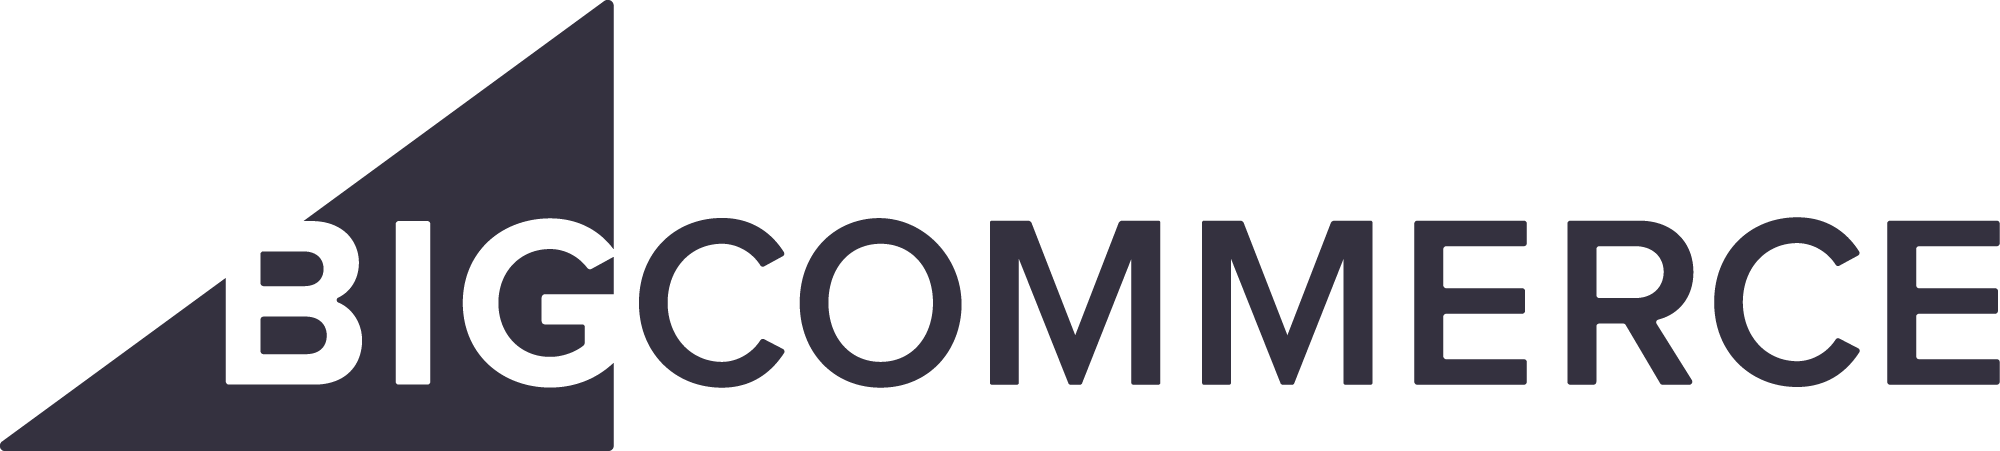 BigCommerce, Inc. logo